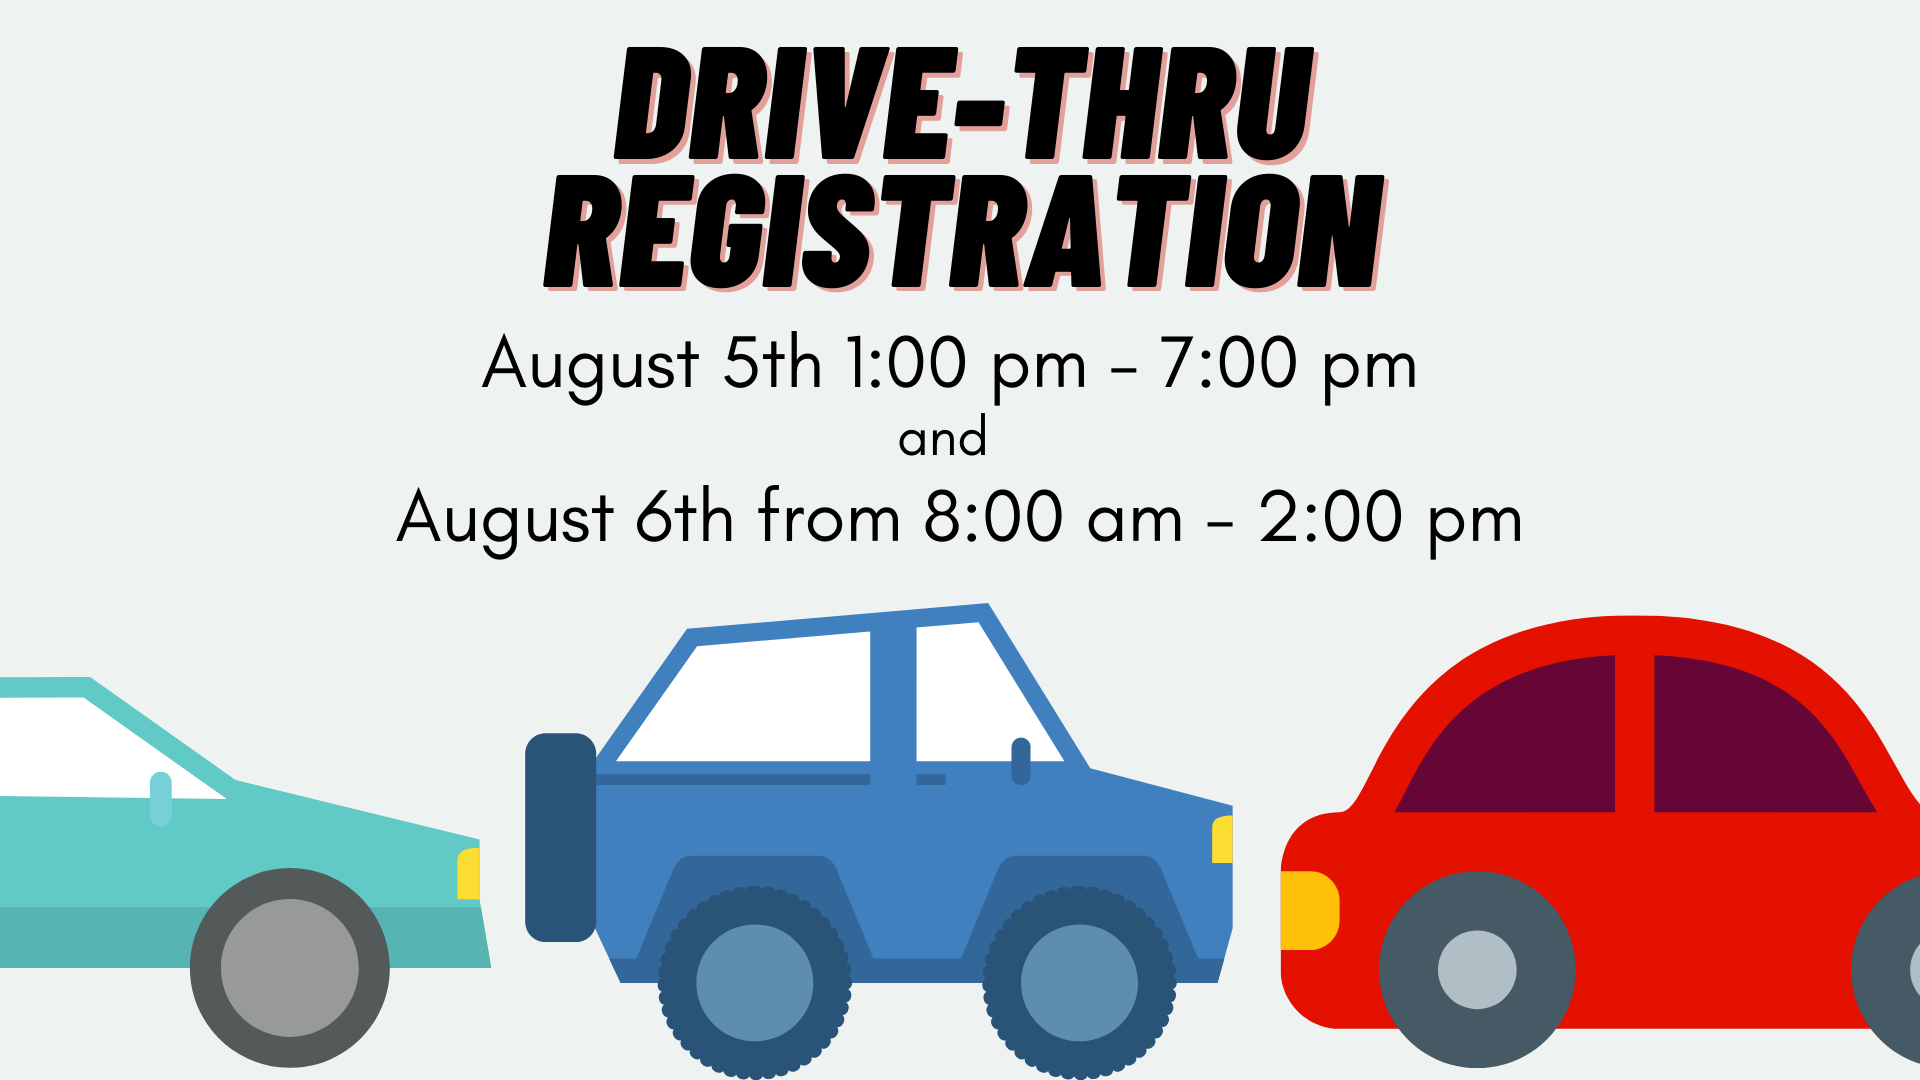 Drive-Thru Registration Information